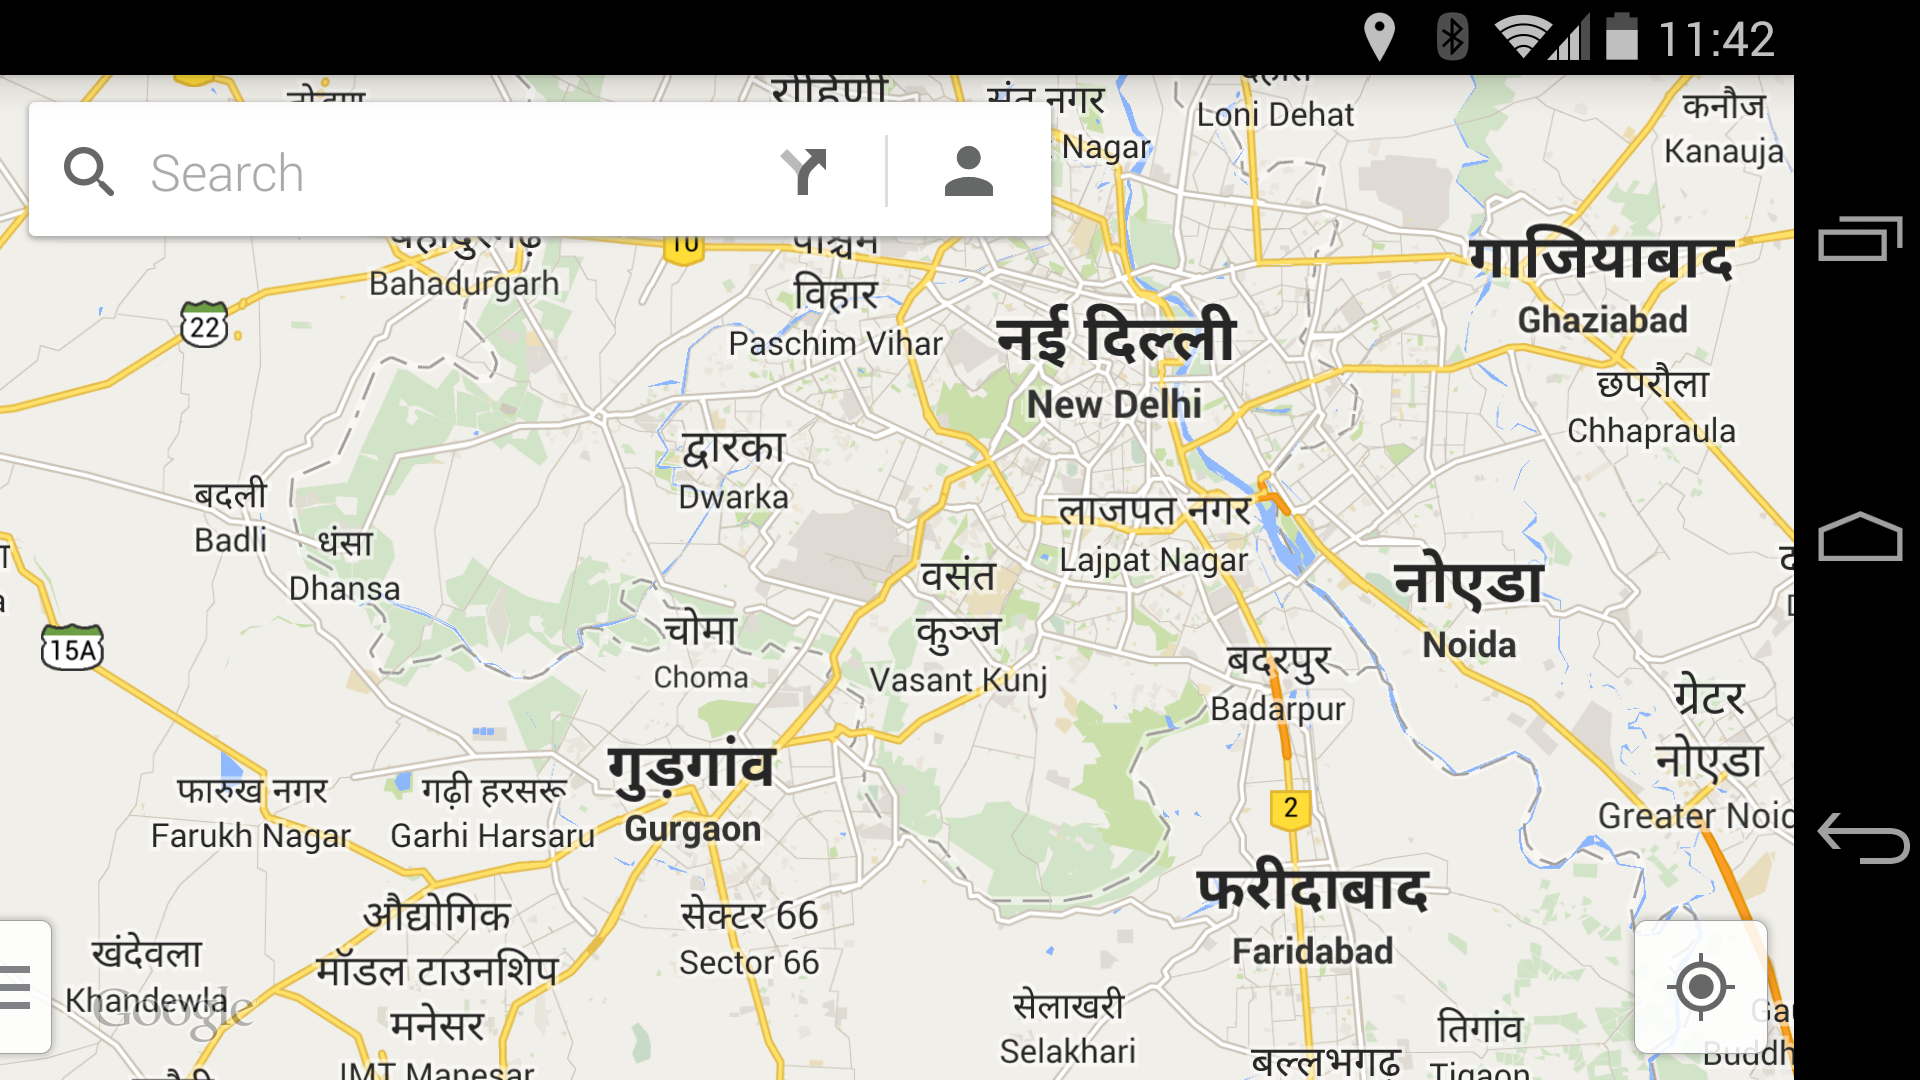 google maps india download in mobile with Hindi Language Support  Es Google Maps Mobile App Website on Details besides 23944 also Portfolio as well File Earth Western Hemisphere transparent background likewise Idea Cellular Infopedia.